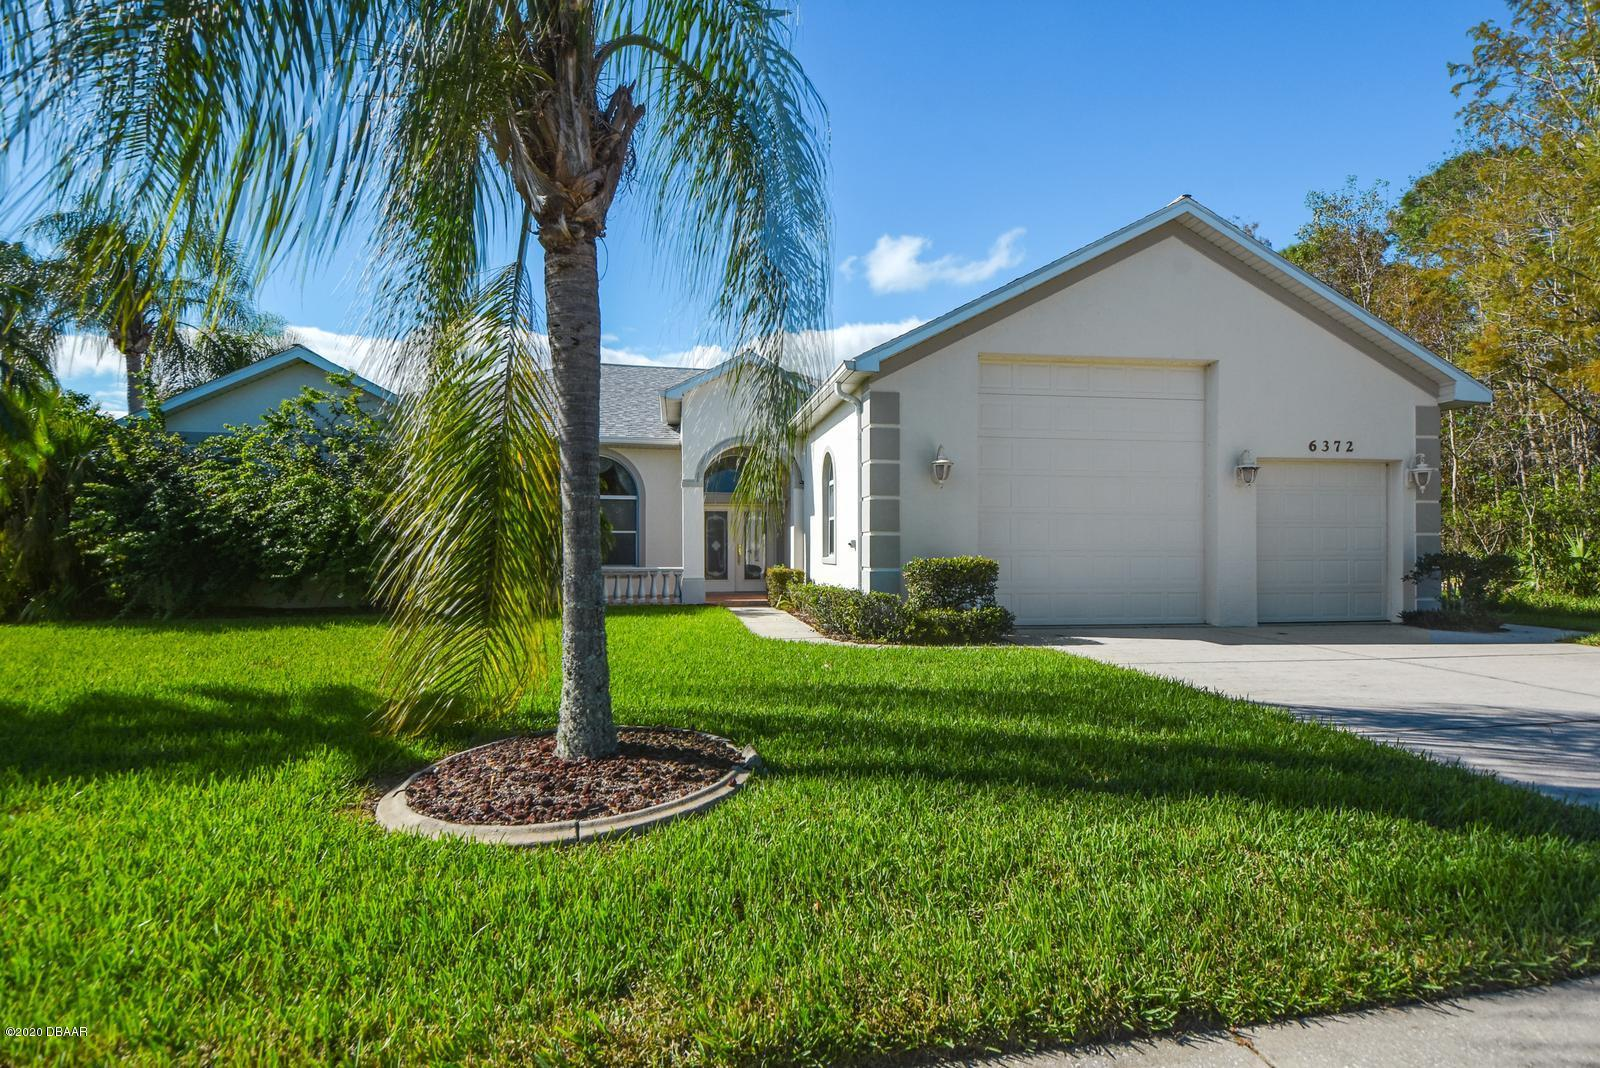 Photo of 6372 Fairway Cove Drive, Port Orange, FL 32128